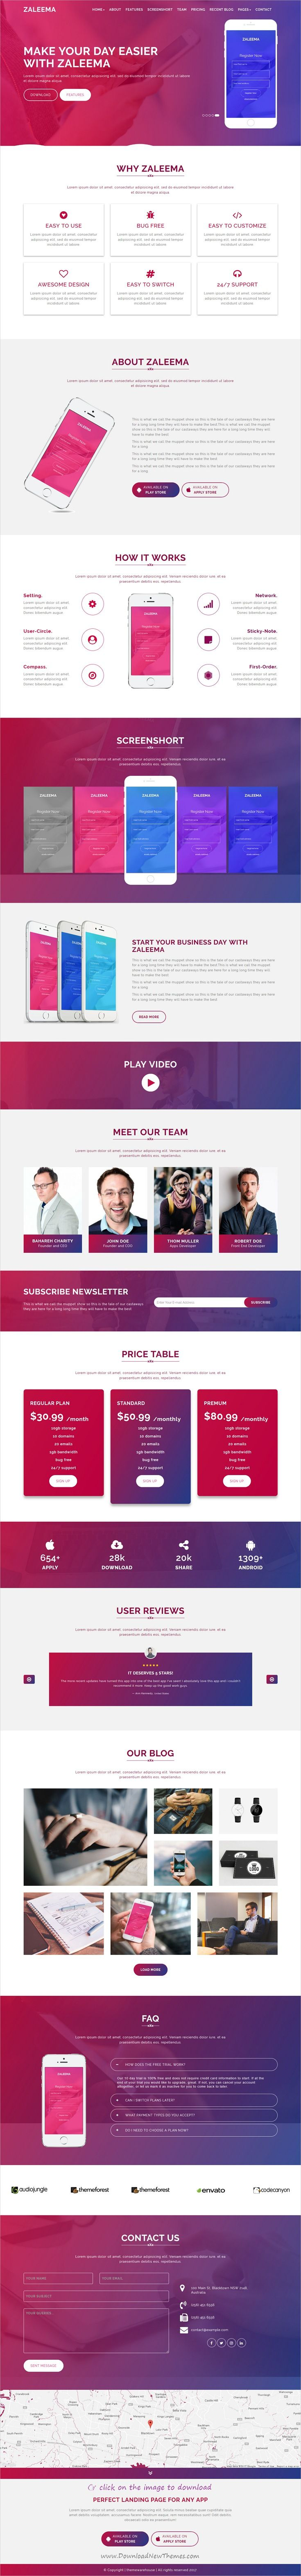 Zaleema is clean and modern design 3in1 responsive #HTML5 template for creative app #landingpage website to download click on image.